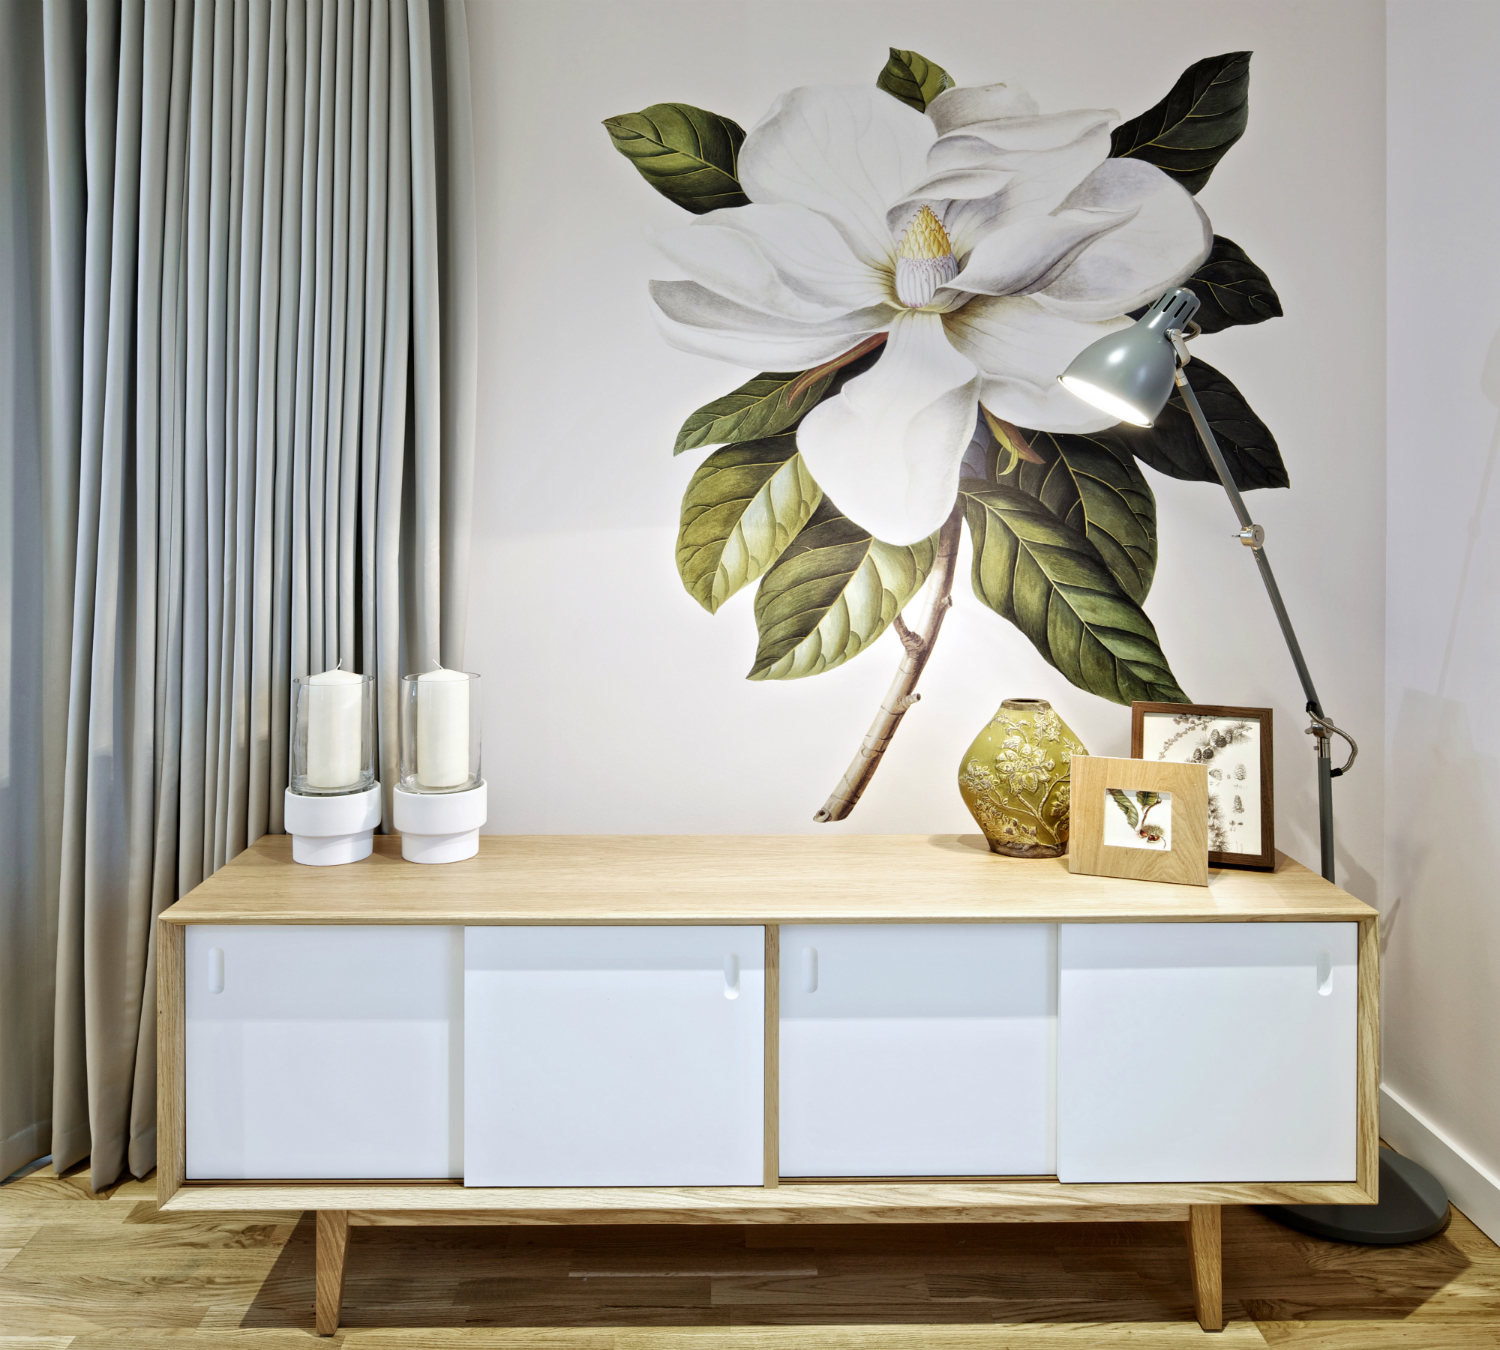 10 Amazing Wall Art Designs For A Lovely Home